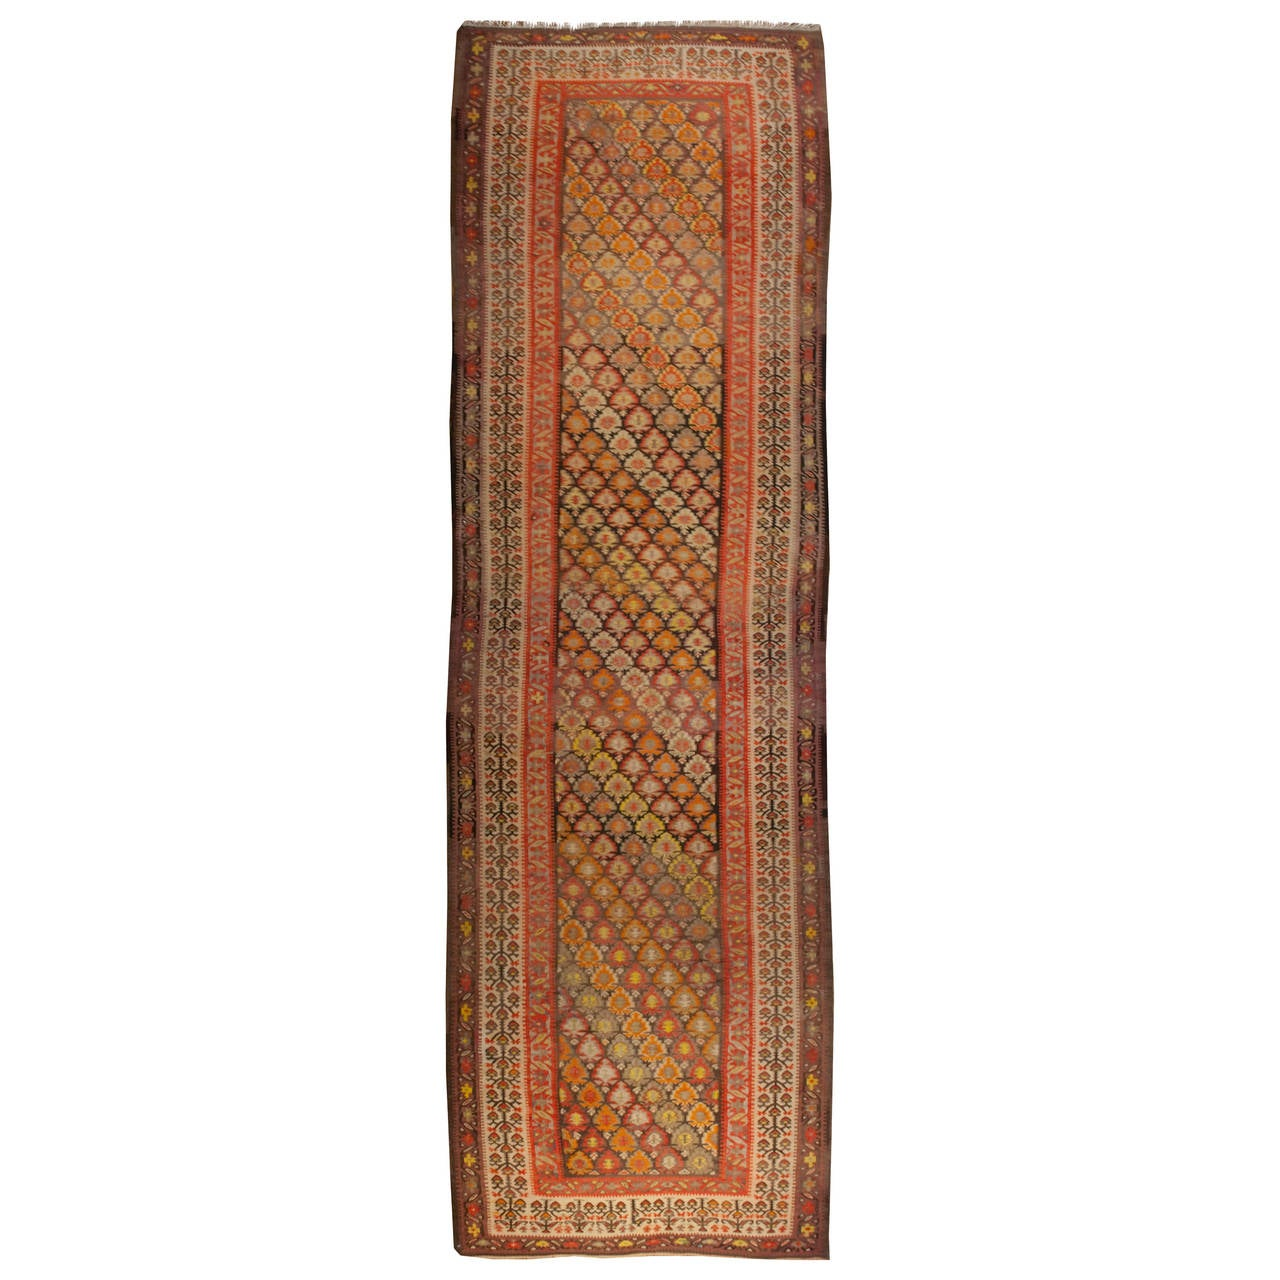 Early 20th Century Qazvin Kilim Runner For Sale At 1stdibs